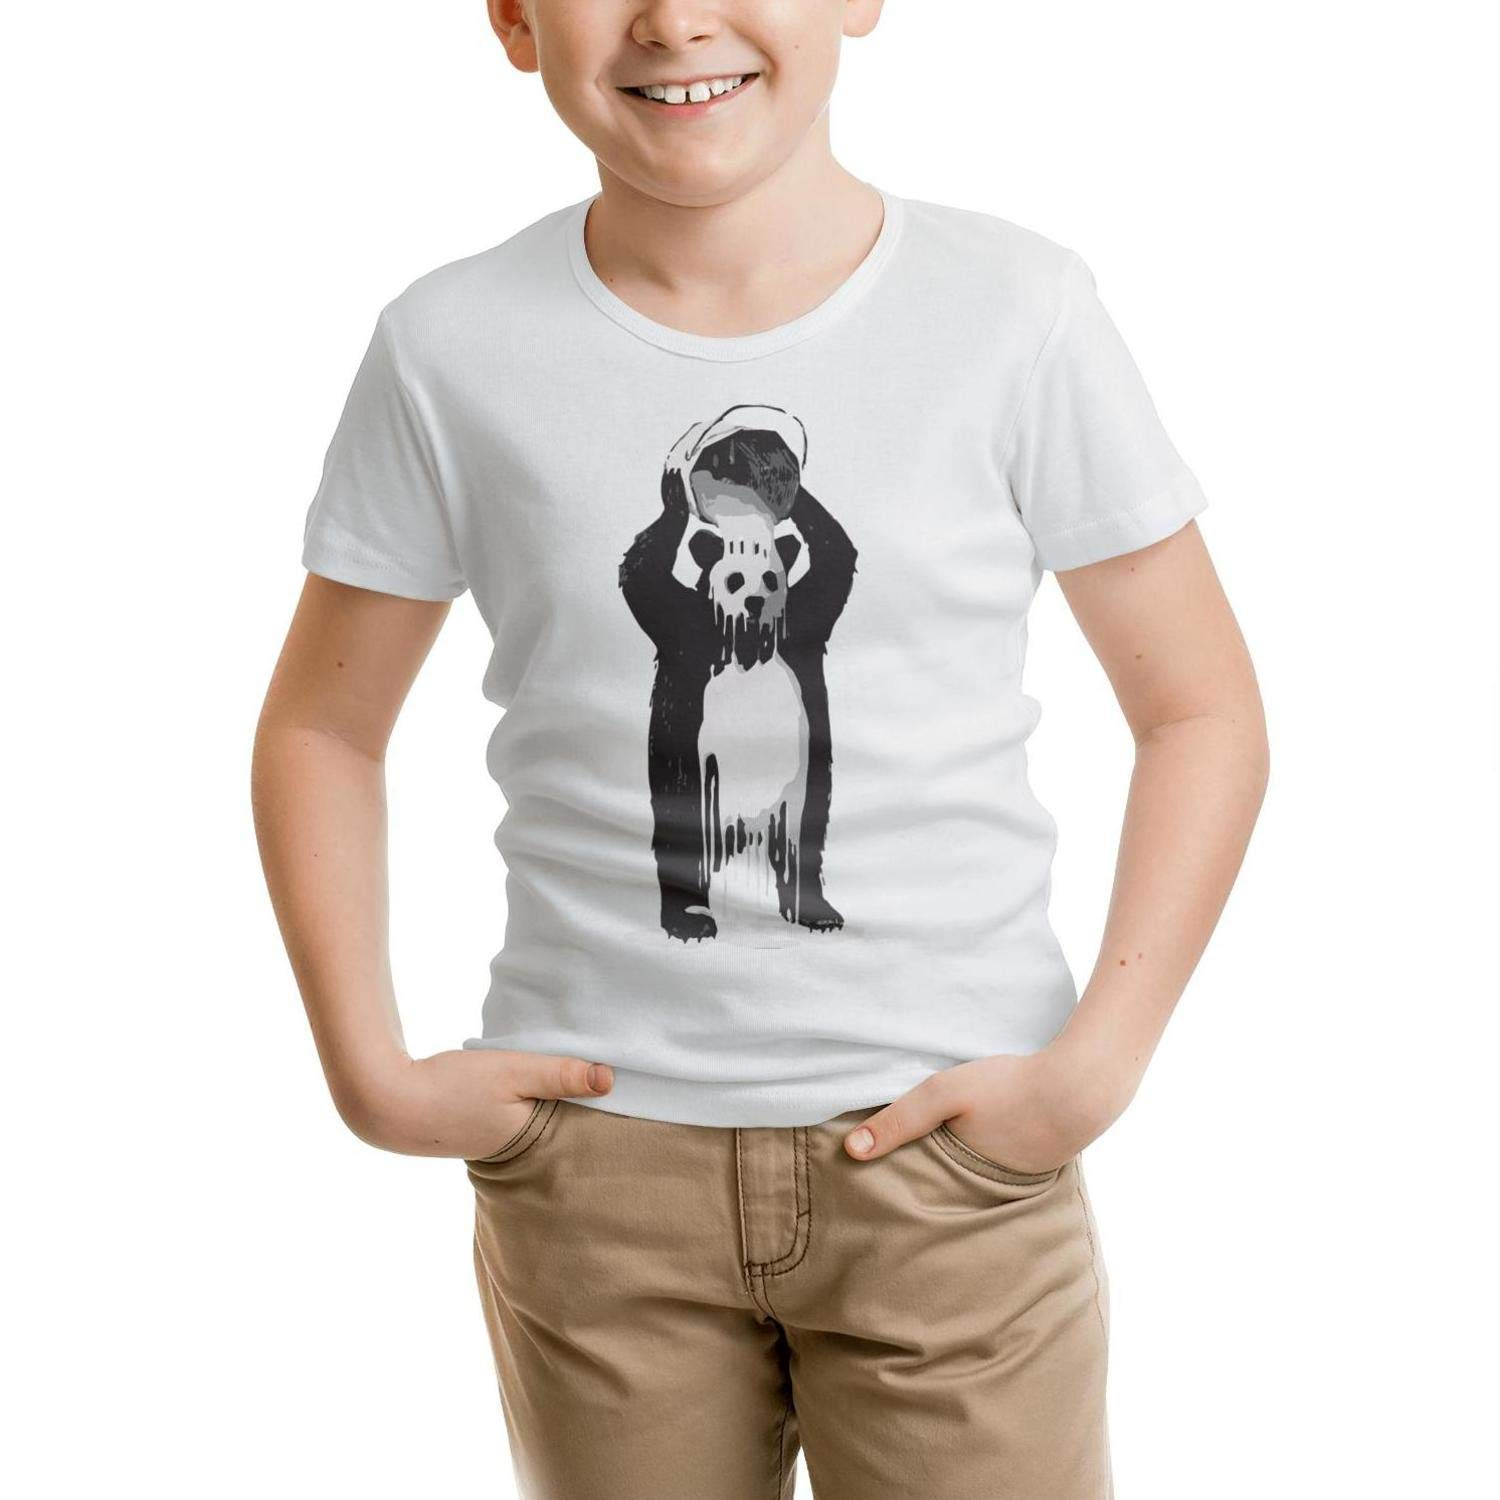 Panda splashs Himself White Oil Paint Unisex Boys Girls Print t Shirts